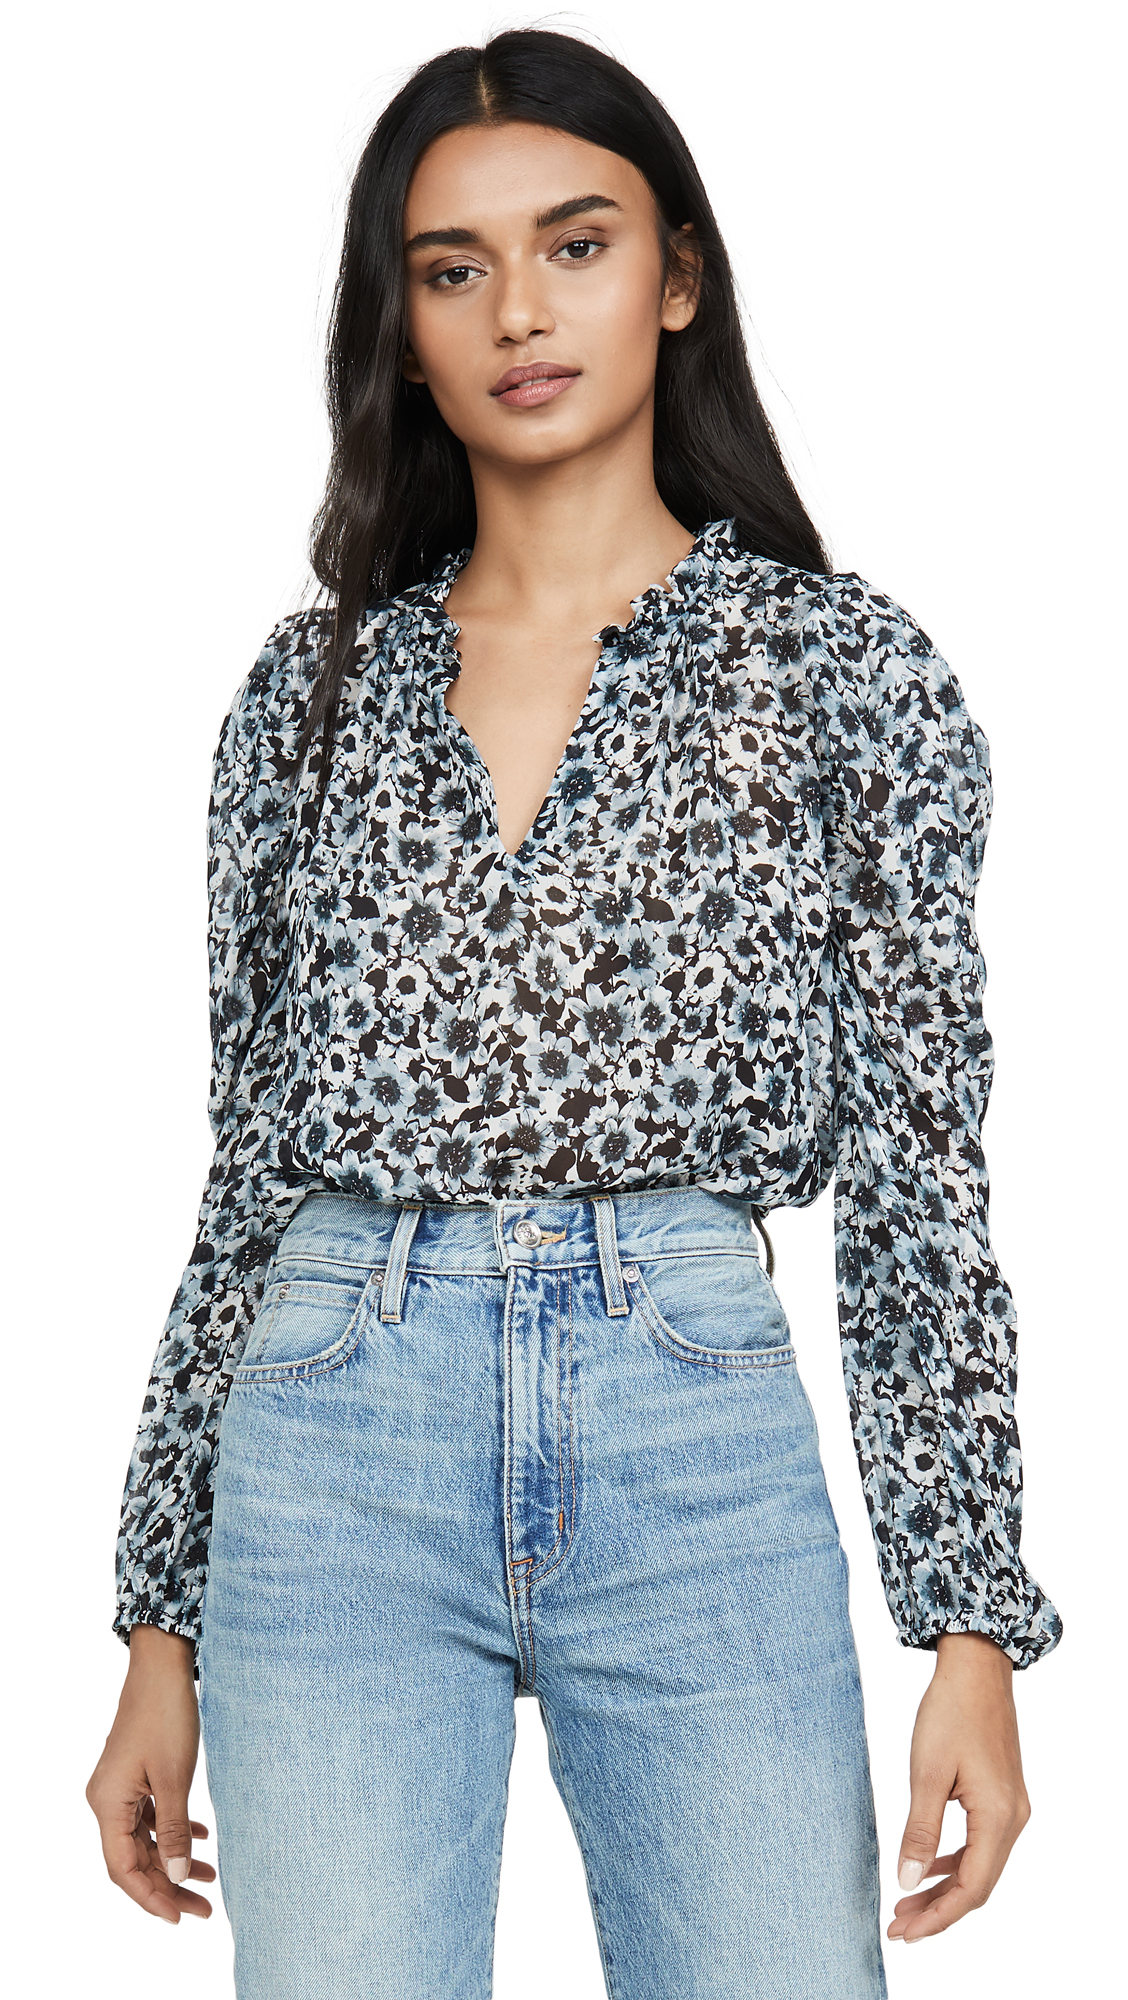 Shoshanna Joelle Top – 30% Off Sale